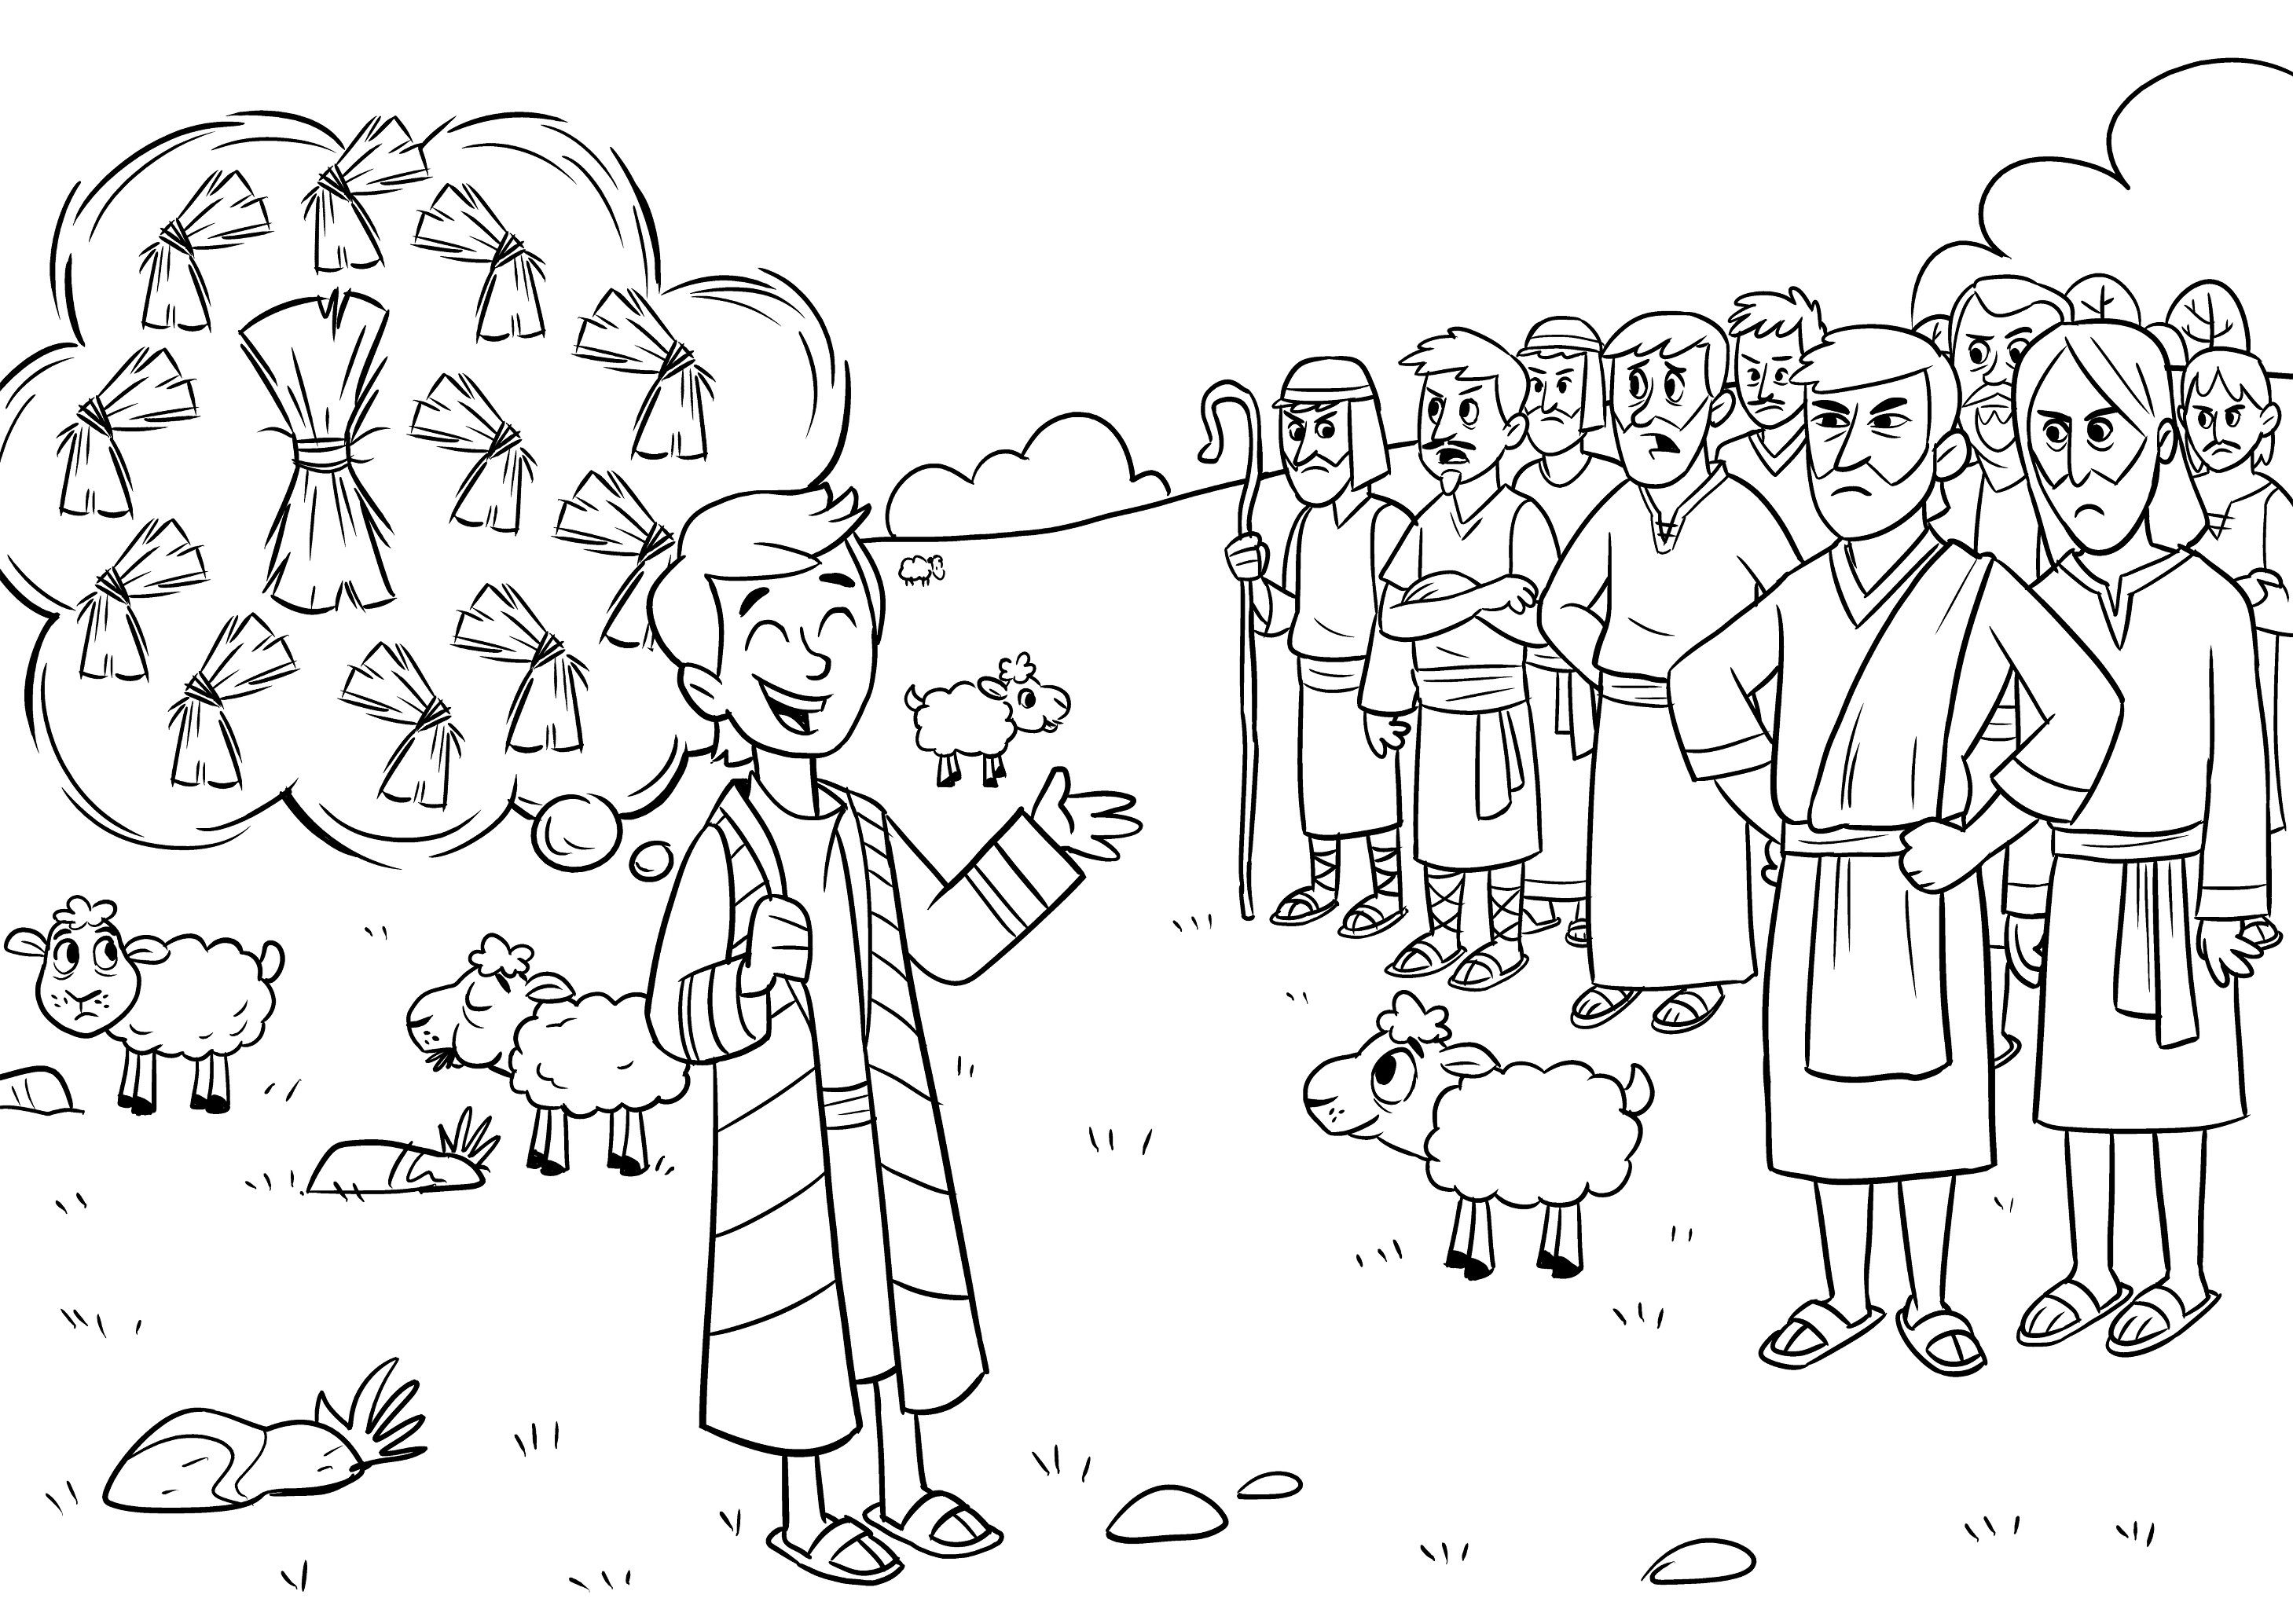 joseph the dreamer coloring pages joseph the dreamer coloring child coloring coloring the joseph dreamer pages